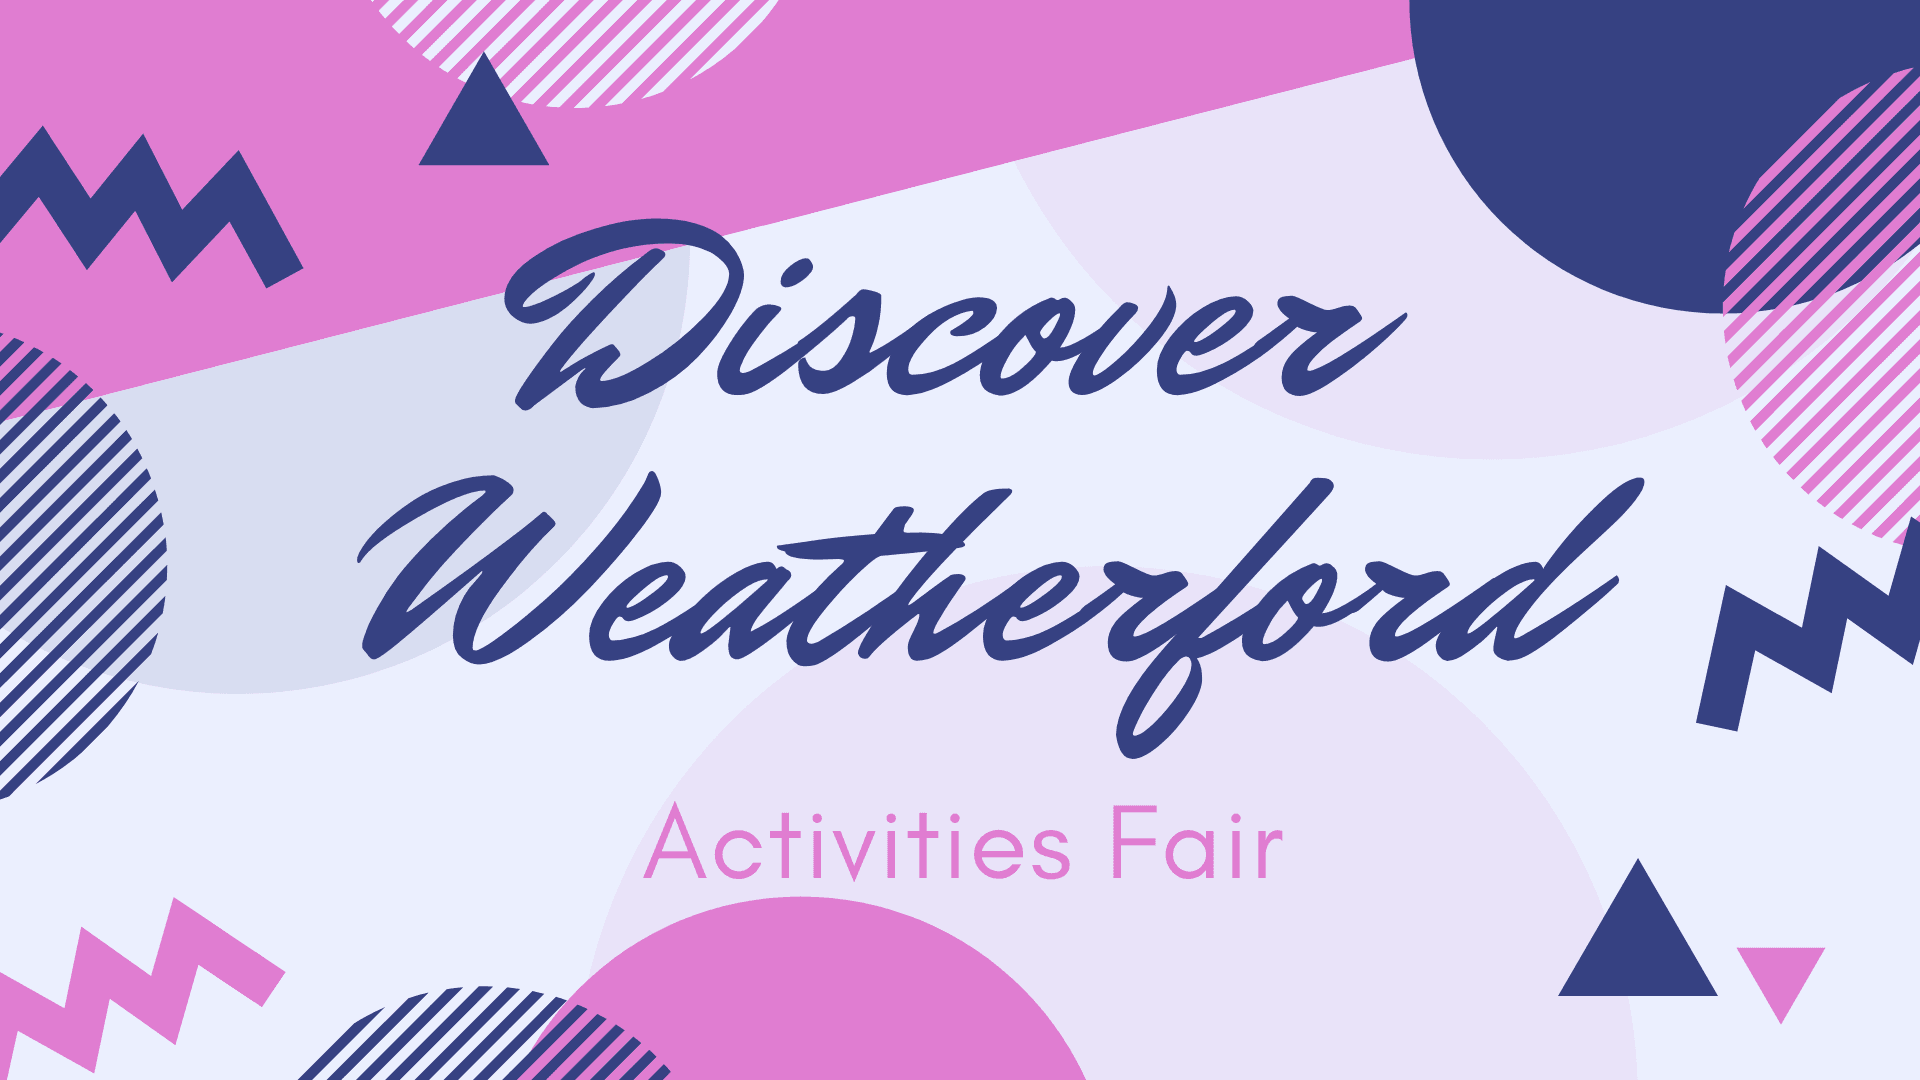 Discover Weatherford Activities Fair Image